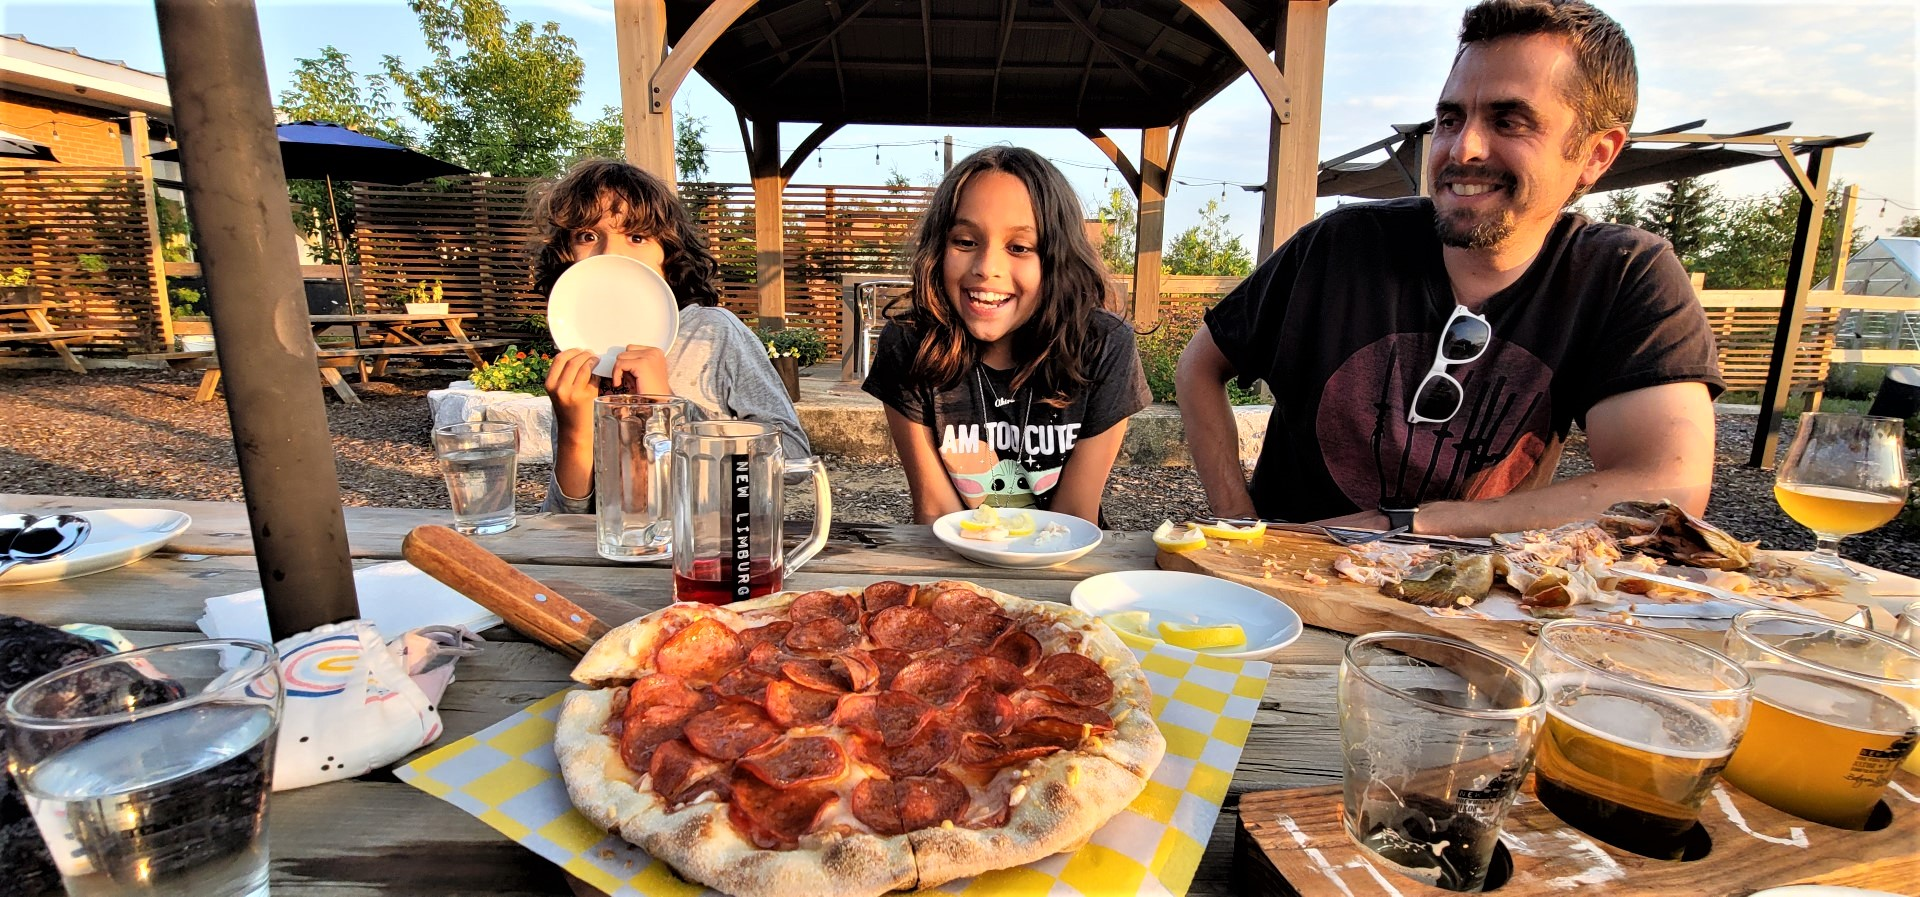 kids and dad smiling at pizza